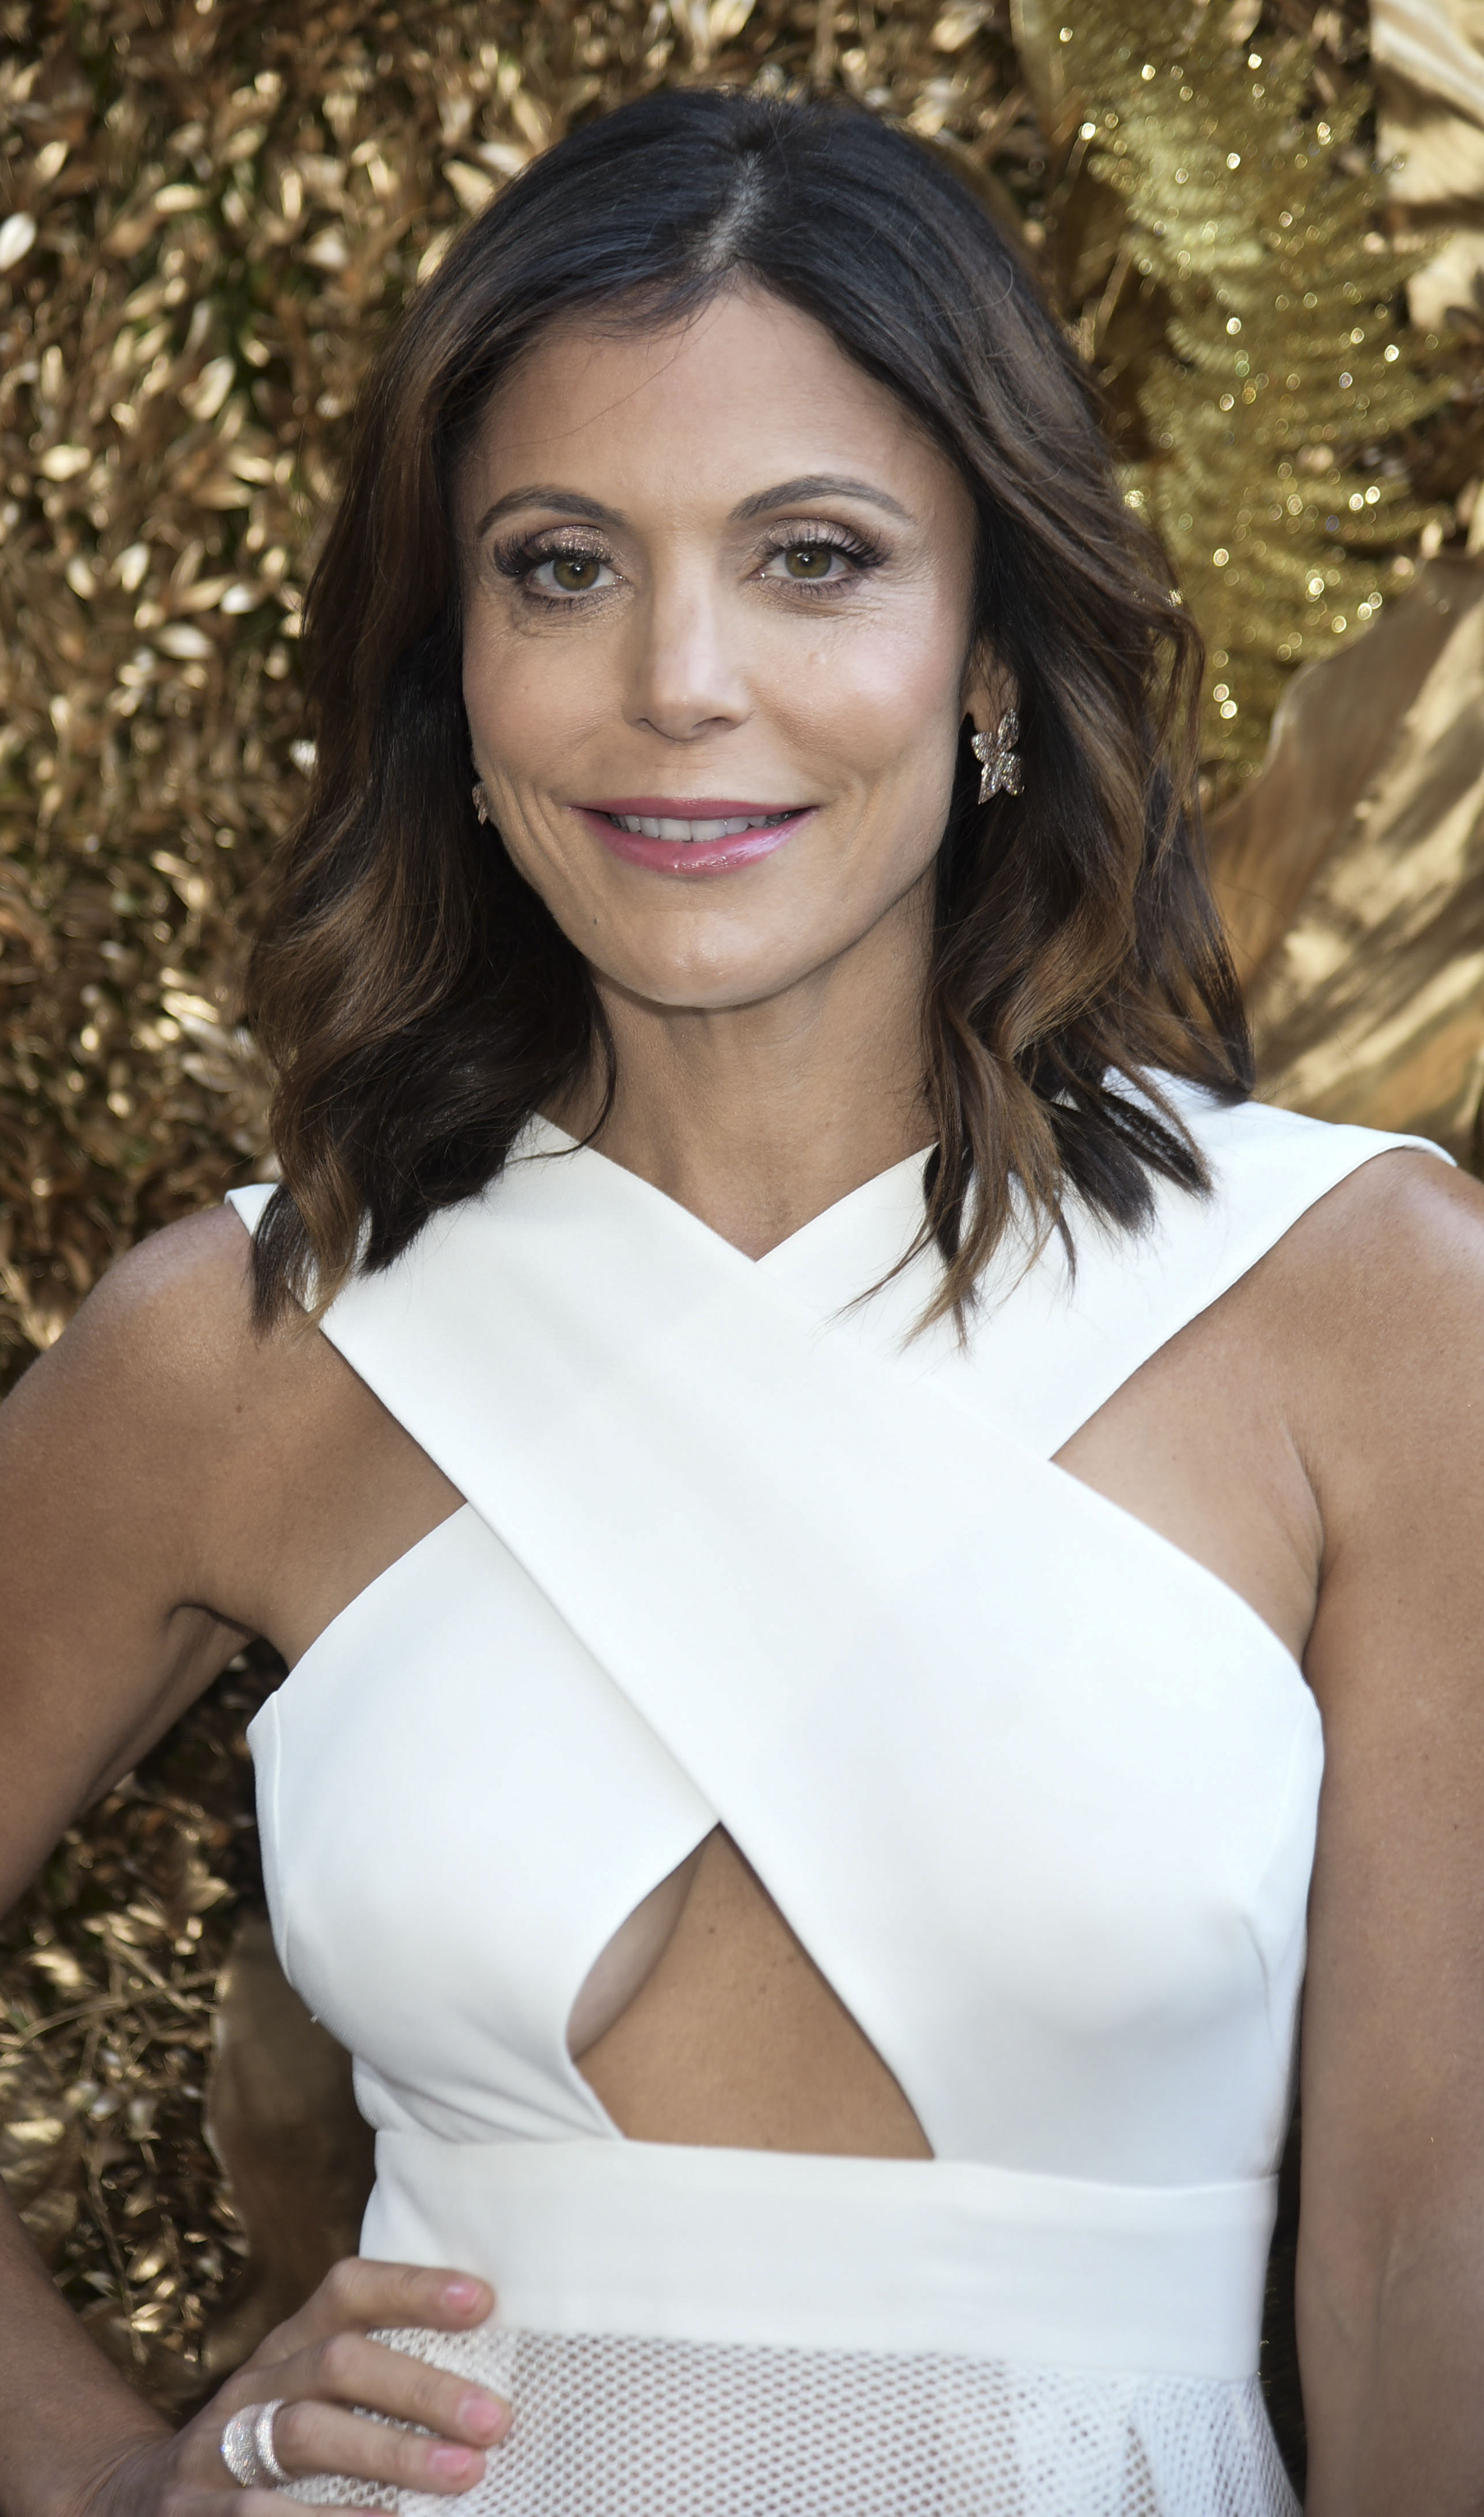 Reality TV star Bethenny Frankel at B. Floral's Golden Cocktail party at Southampton Social Club.Featuring: Bethenny FrankelWhere: Southampton, New York, United StatesWhen: 17 Aug 2017Credit: Rob Rich/WENN.com